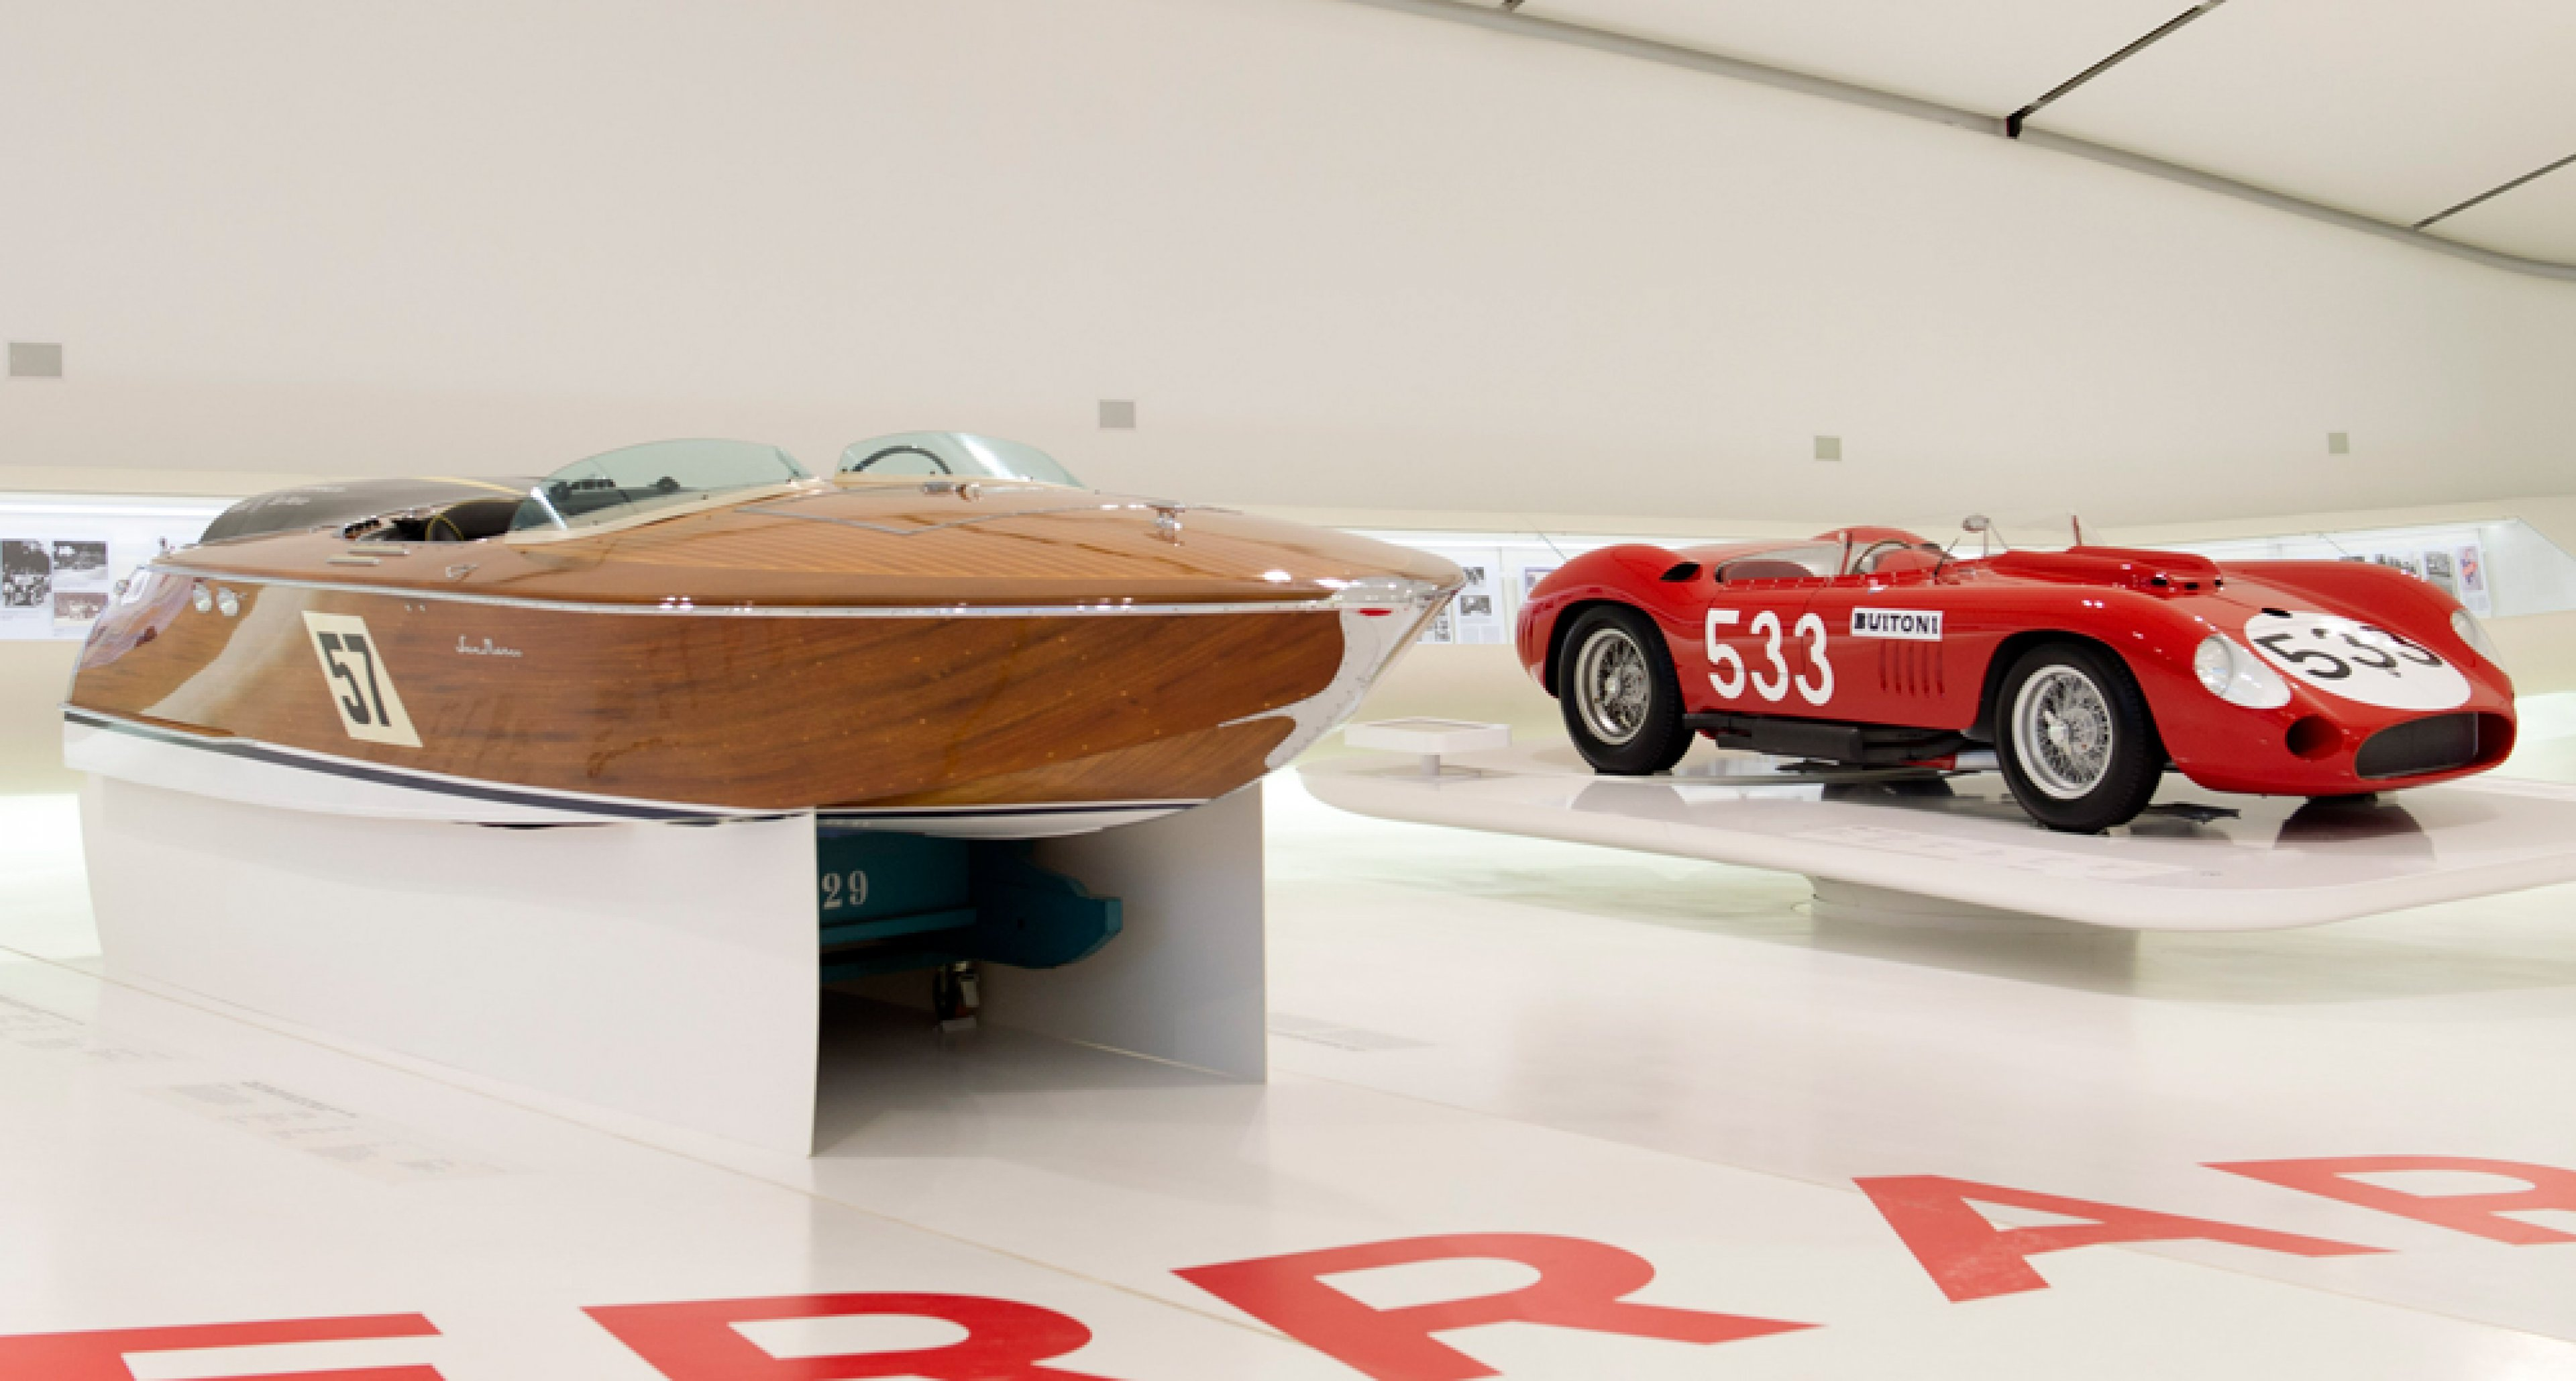 San Marco Maserati boat on display at Museo Cases Enzo Ferrari last year